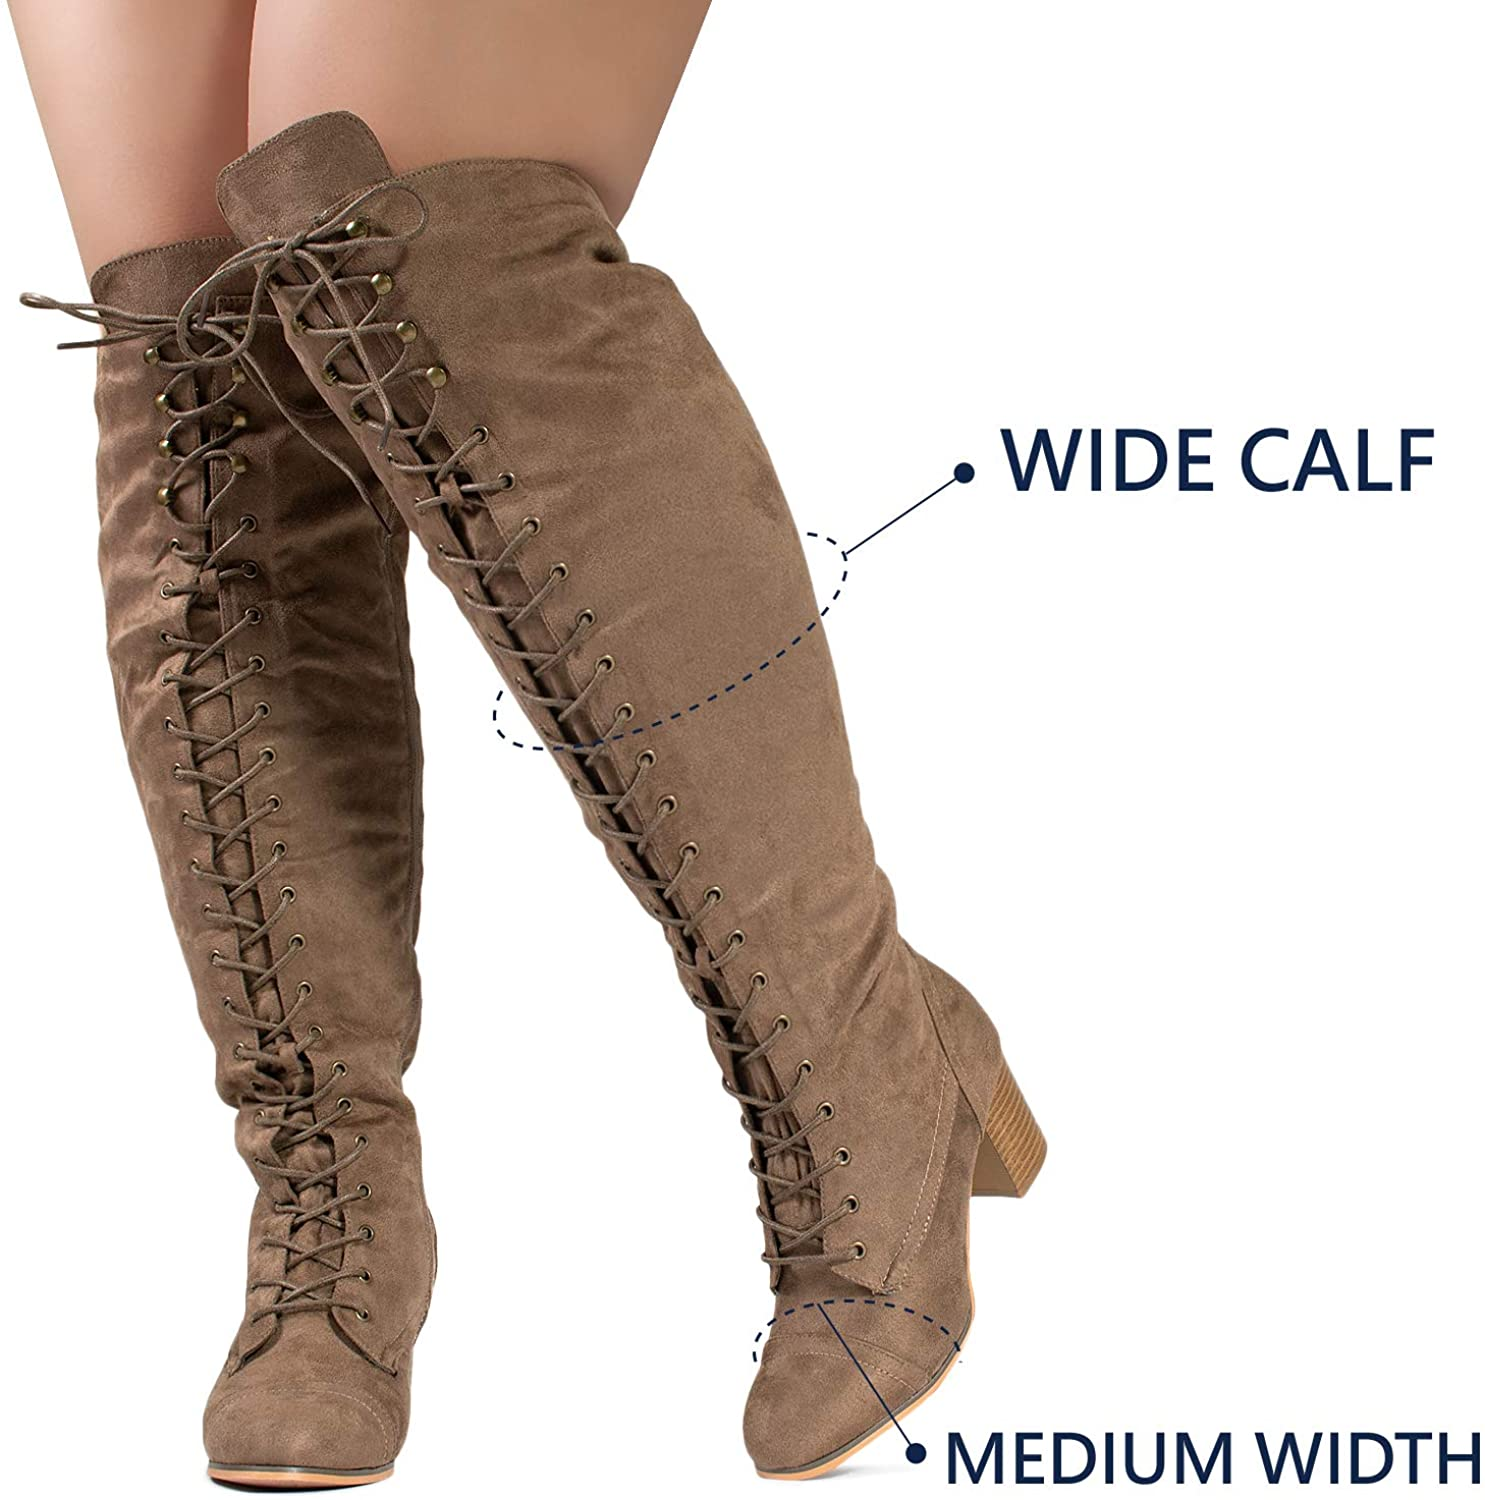 1940s Women's Footwear RF ROOM OF FASHION Womens Wide Calf Block Heel Lace Up Over The Knee Riding Boots  AT vintagedancer.com